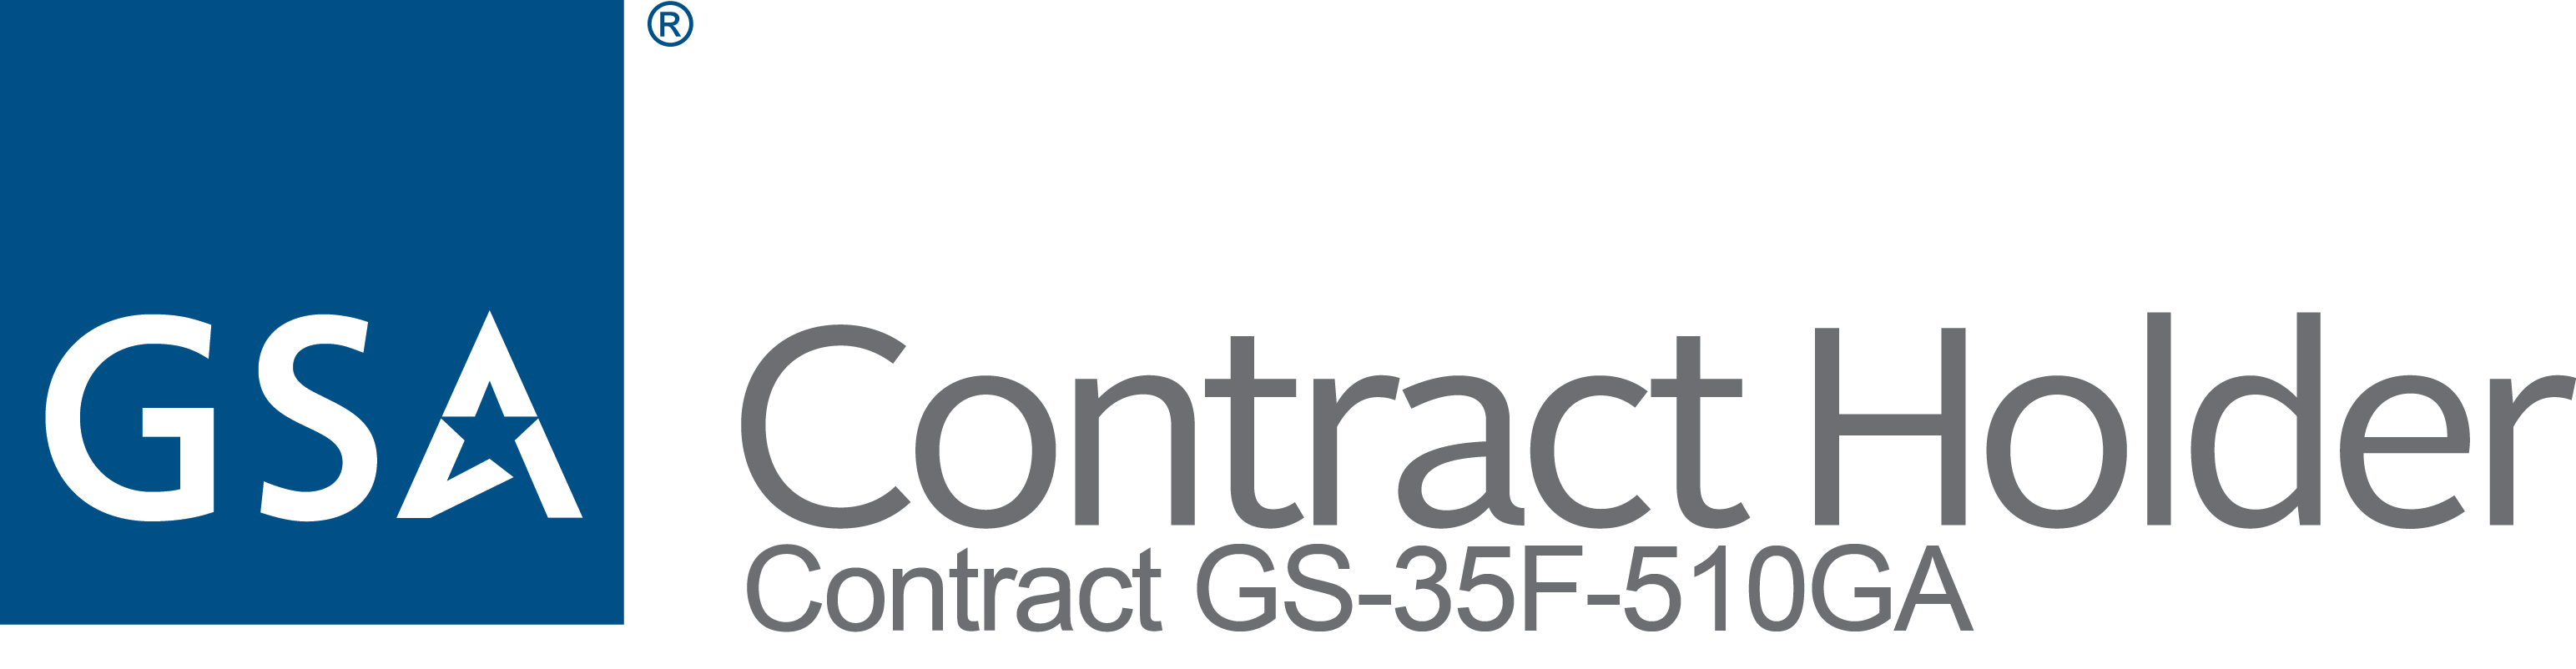 Contract_Holder_StarMark_Color_w_Contract_Number_A